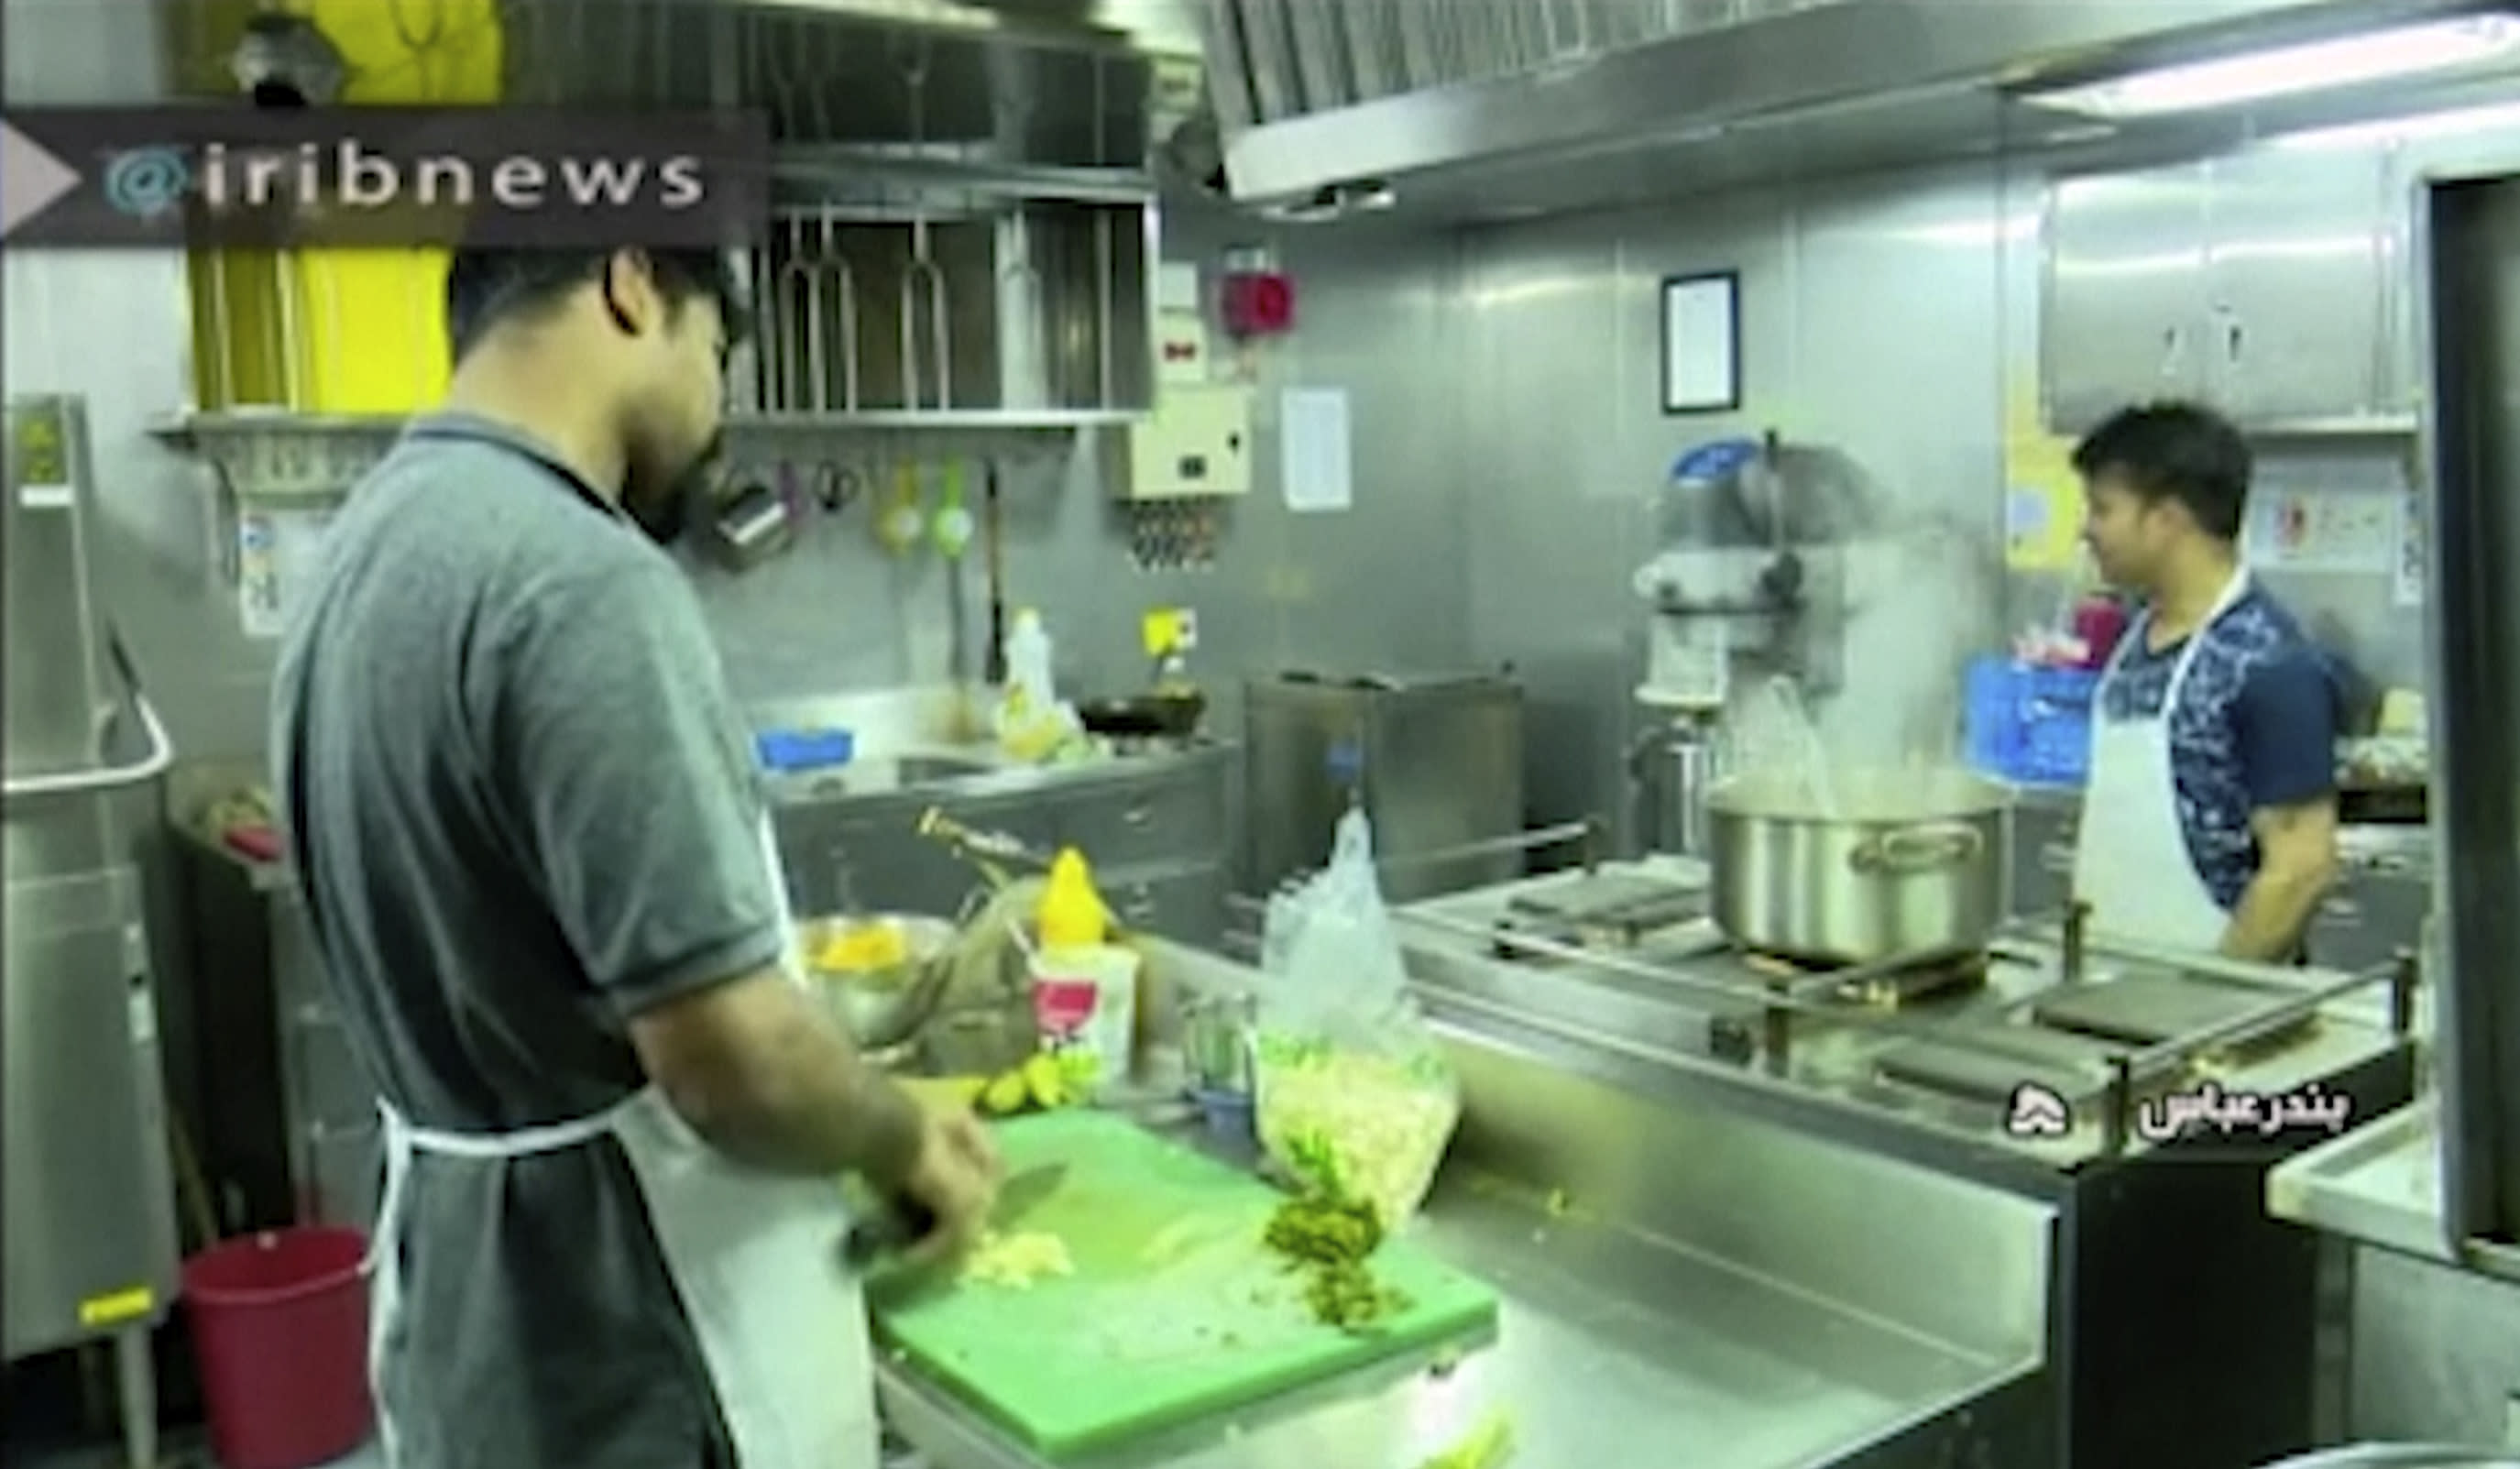 In this photo released by state-run IRIB News Agency, which aired on Monday, July 22, 2019, shows cooks in the galley of the British-flagged tanker Stena Impero that was seized by Tehran in the Strait of Hormuz on Friday. The Associated Press cannot independently verify the condition of the crew members, but in the video they looked to be in good health and it didn't appear as though they were being filmed under duress. (IRIB News Agency via AP)